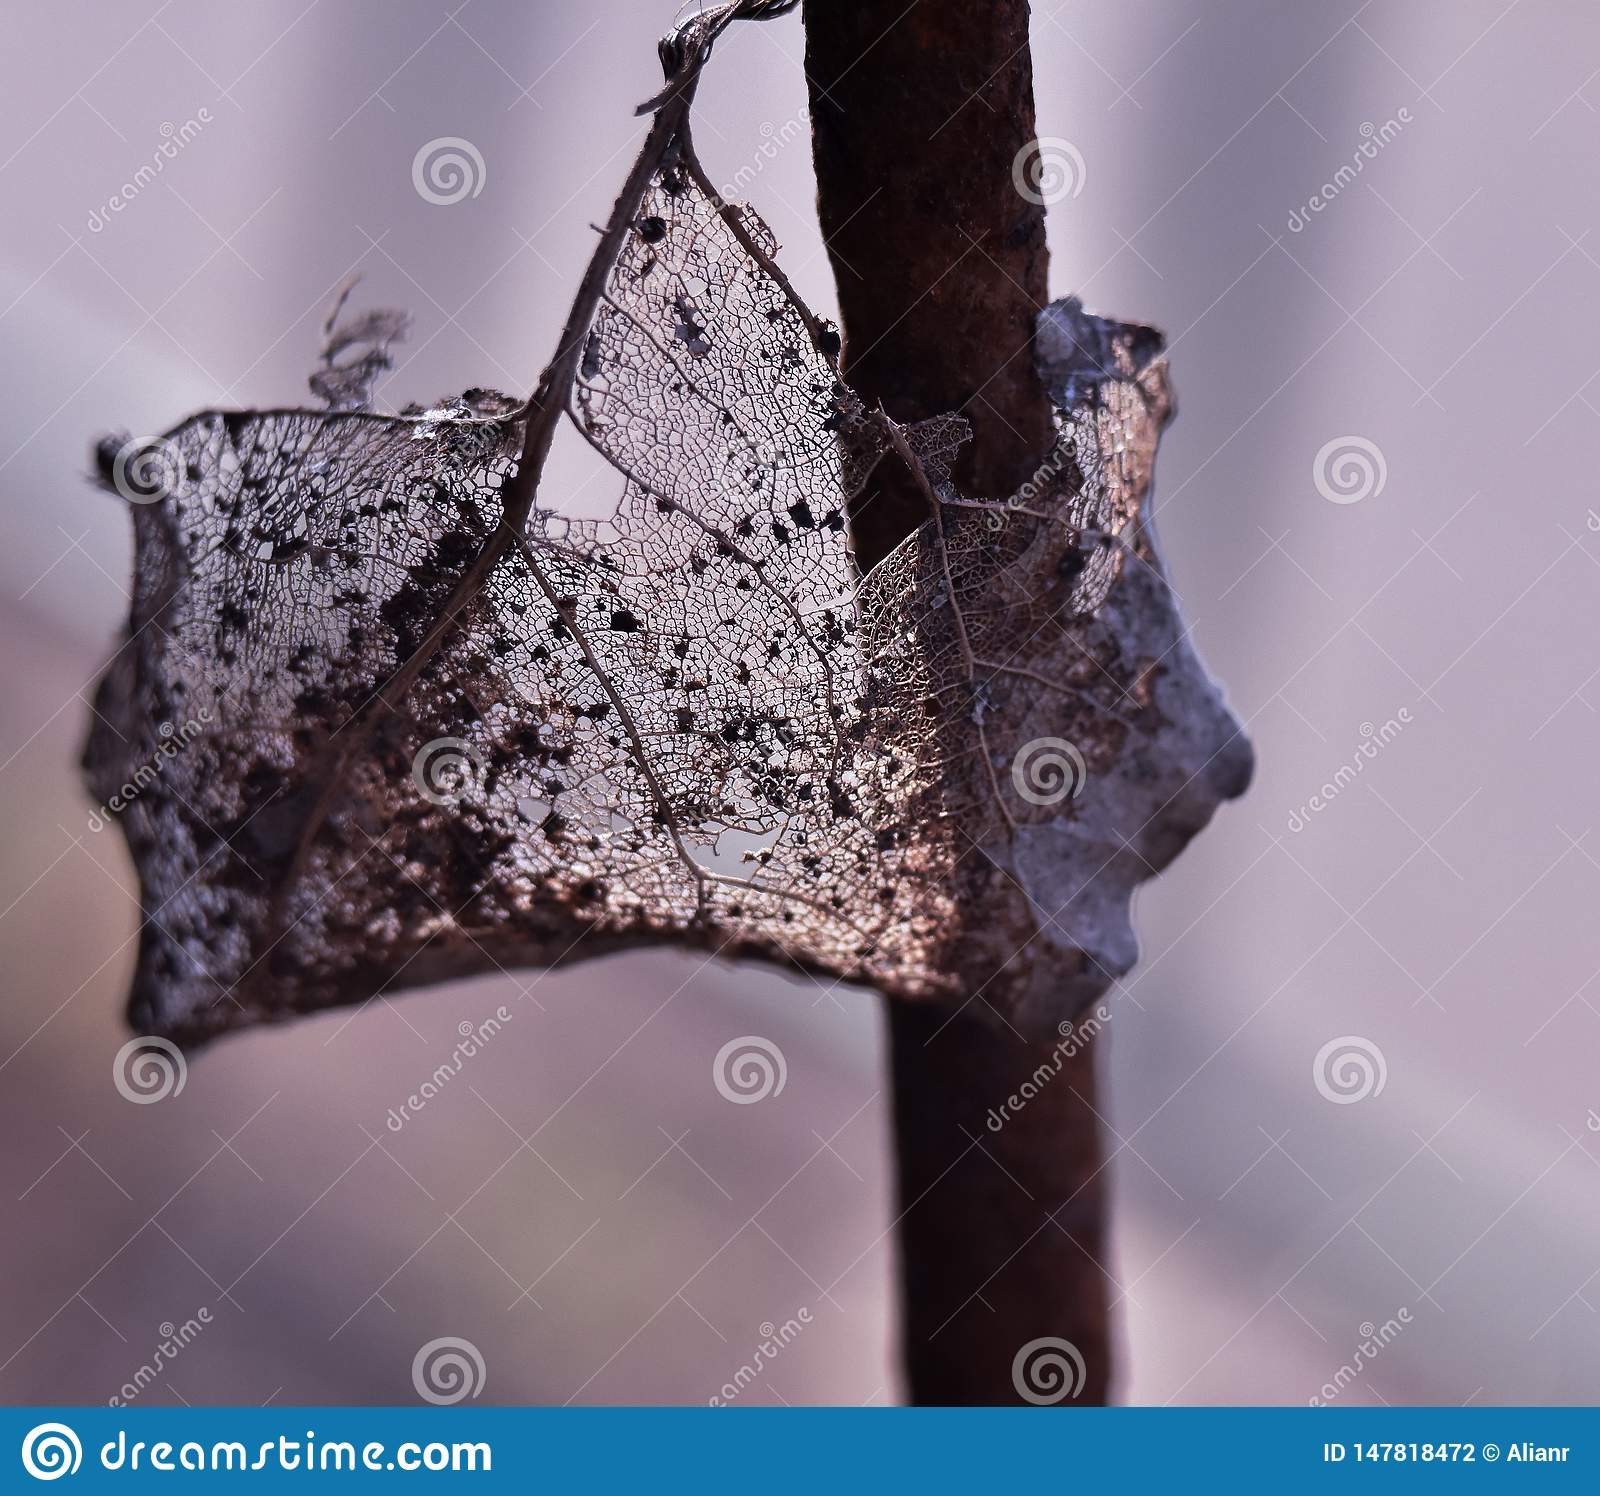 Macro photo of a dry leaf hanging on a metal pin